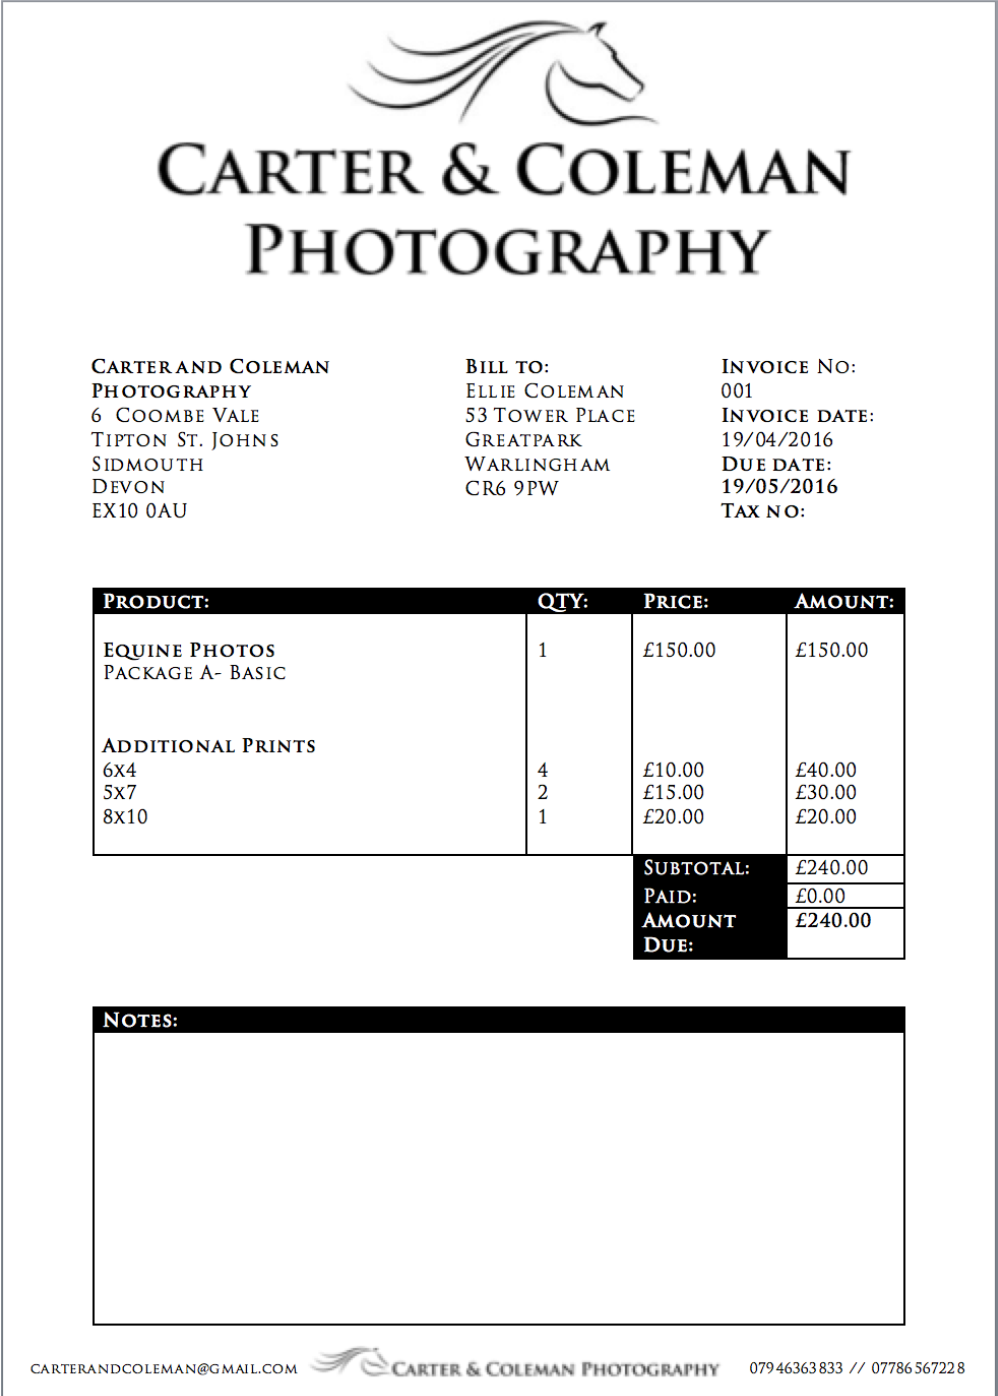 Legalities Invoice Copyright And Licensing By Vicky Carter Medium